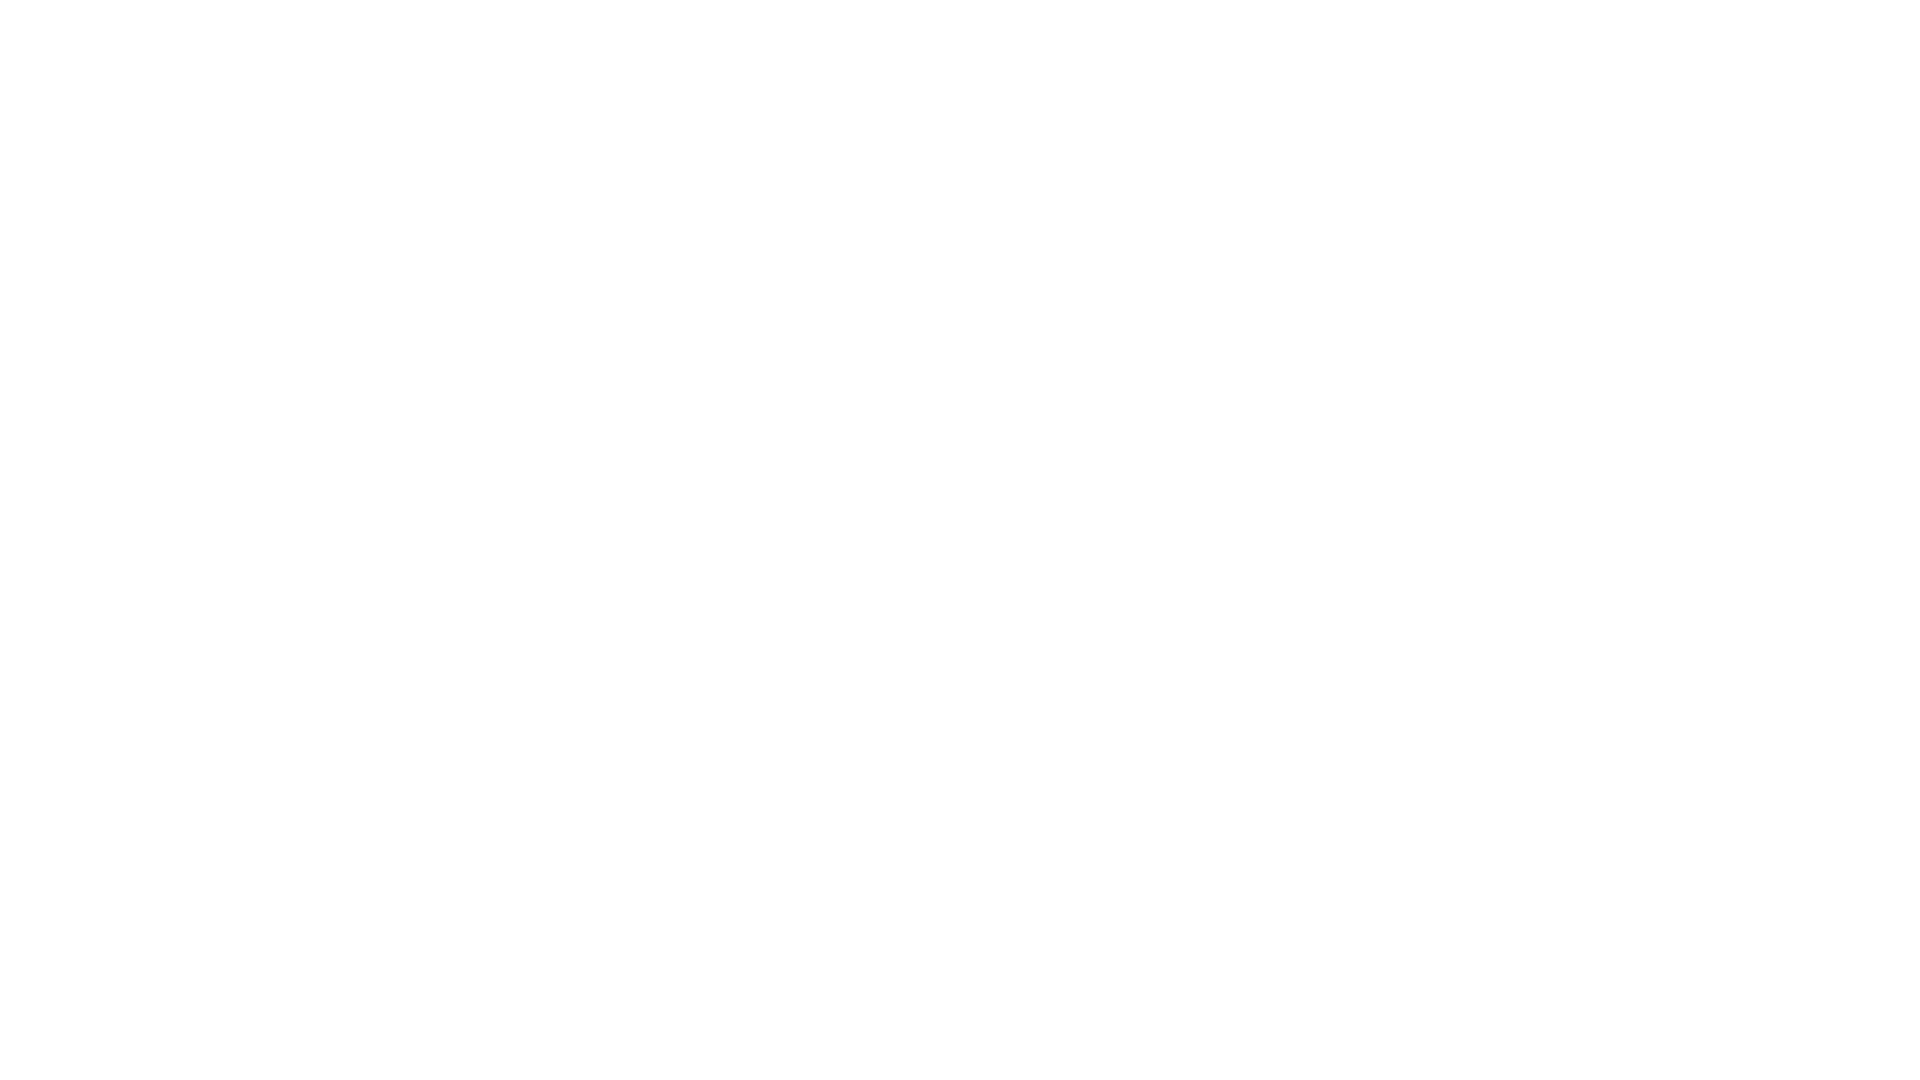 Gallaugher Contracting